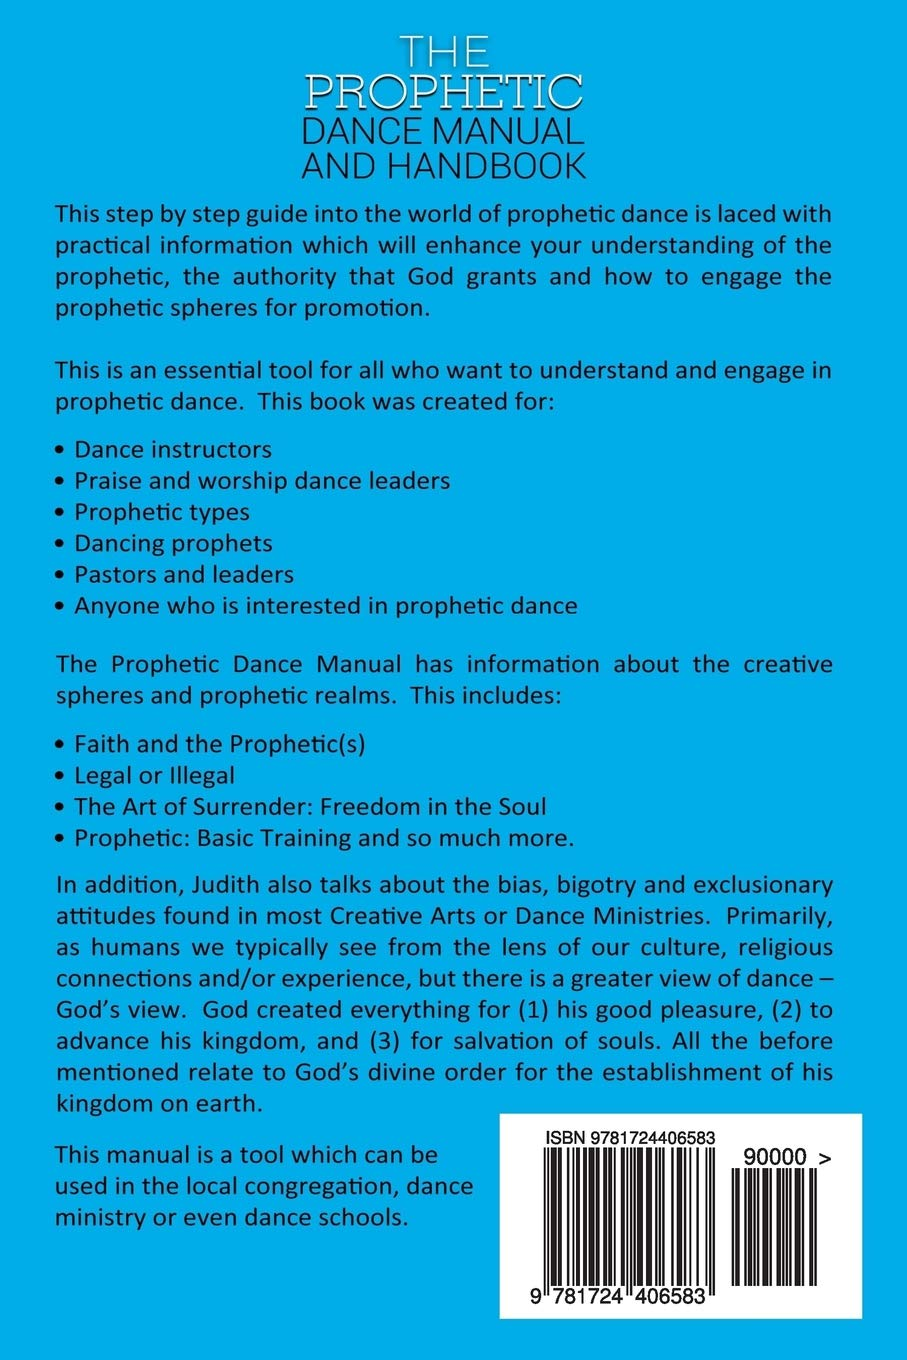 Prophetic Dance Manual and Handbook: The Expressions, Gestures and Word of  God through Dance: Judith John: 9781724406583: Amazon.com: Books